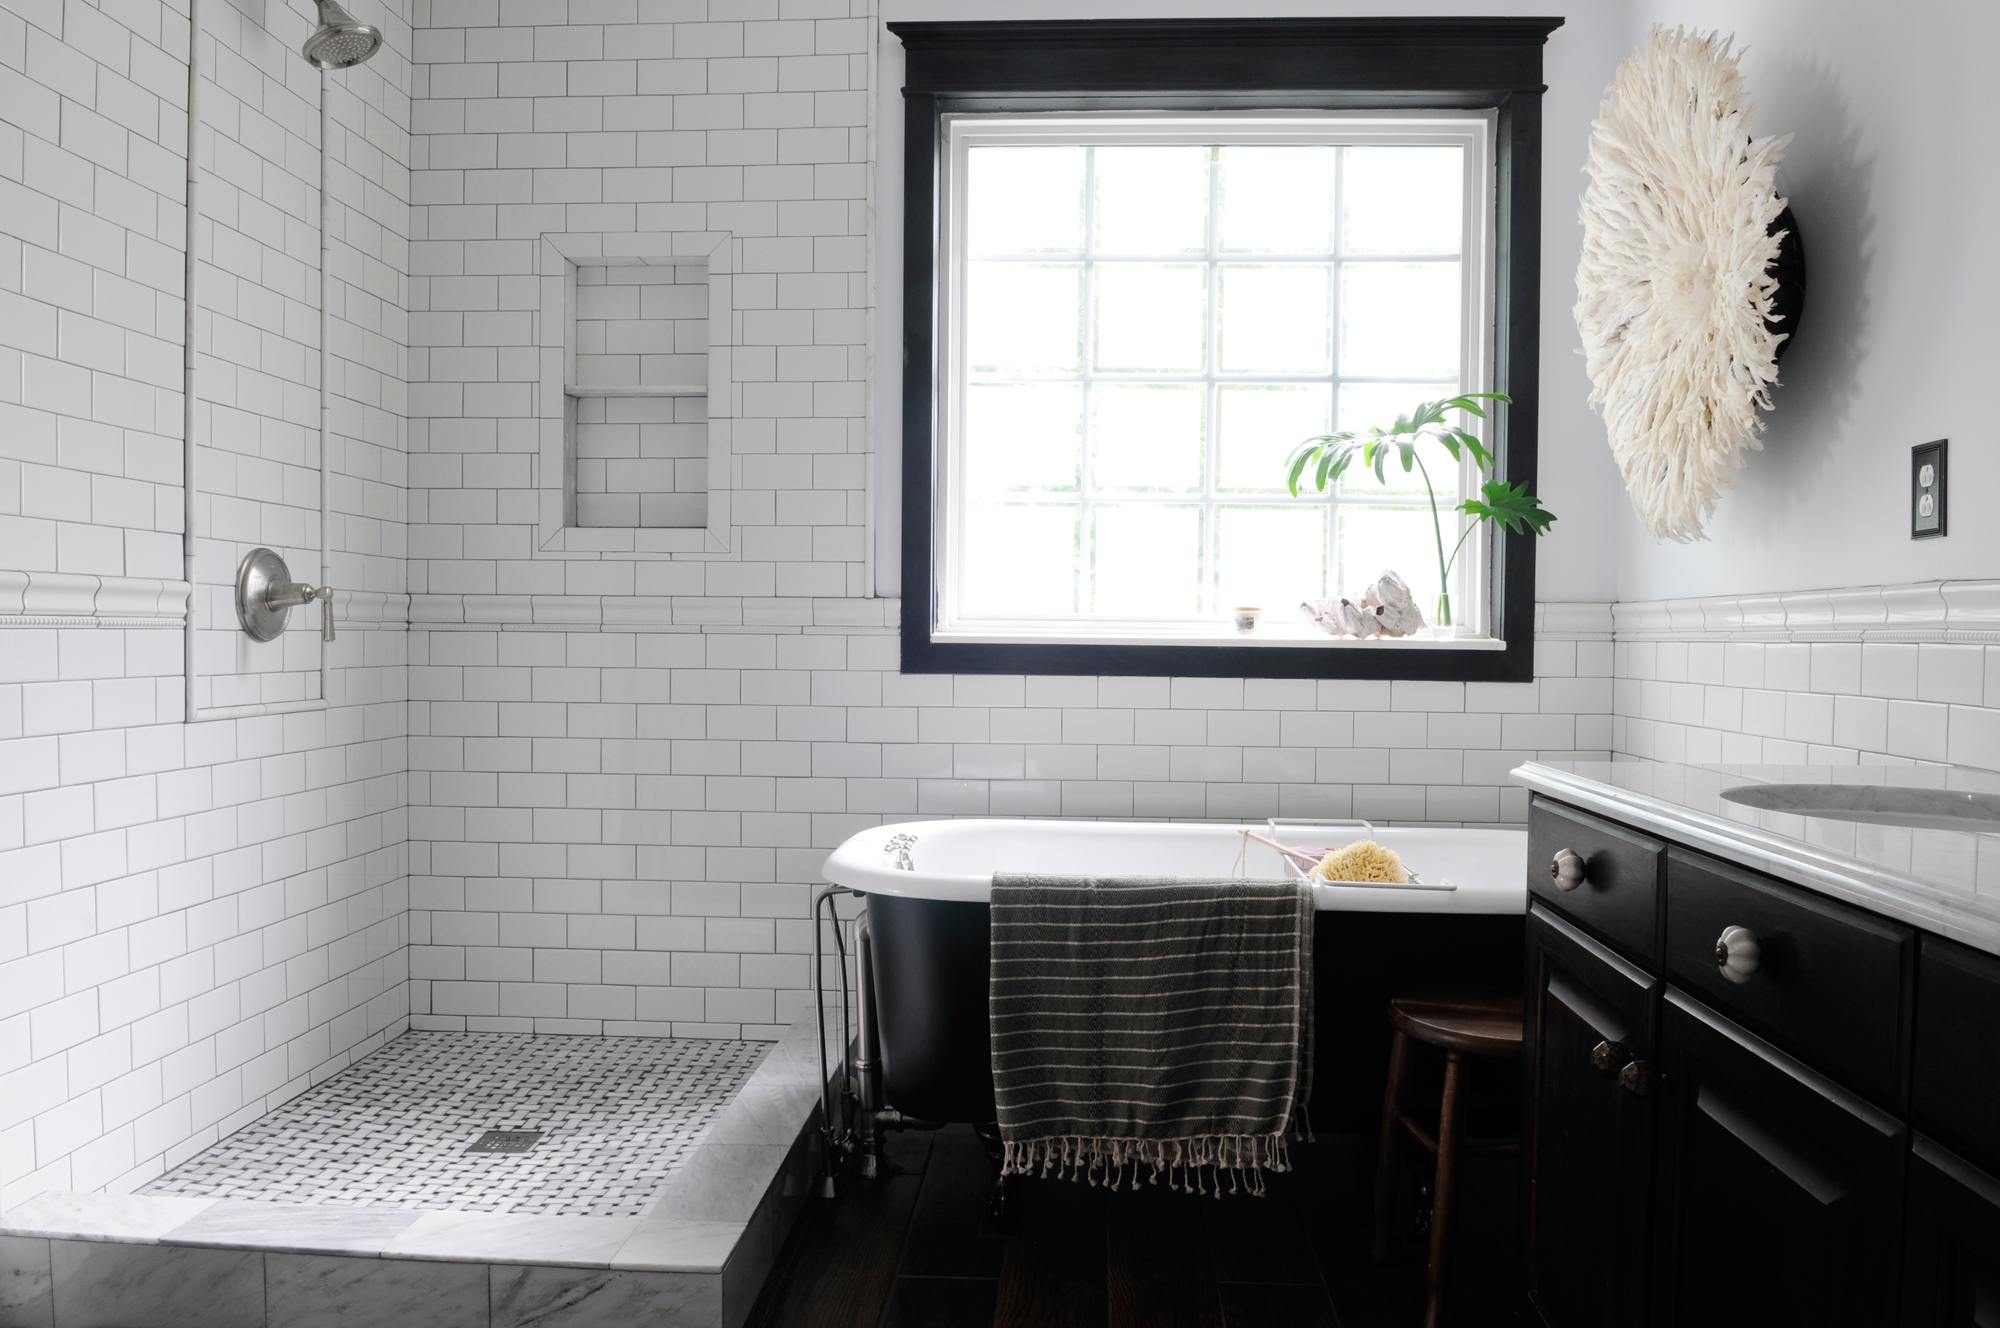 Fabulous Retro Bathroom Design Ideas More - Gmm Home Interior | #27716 in Vintage Black And White Bathroom Ideas